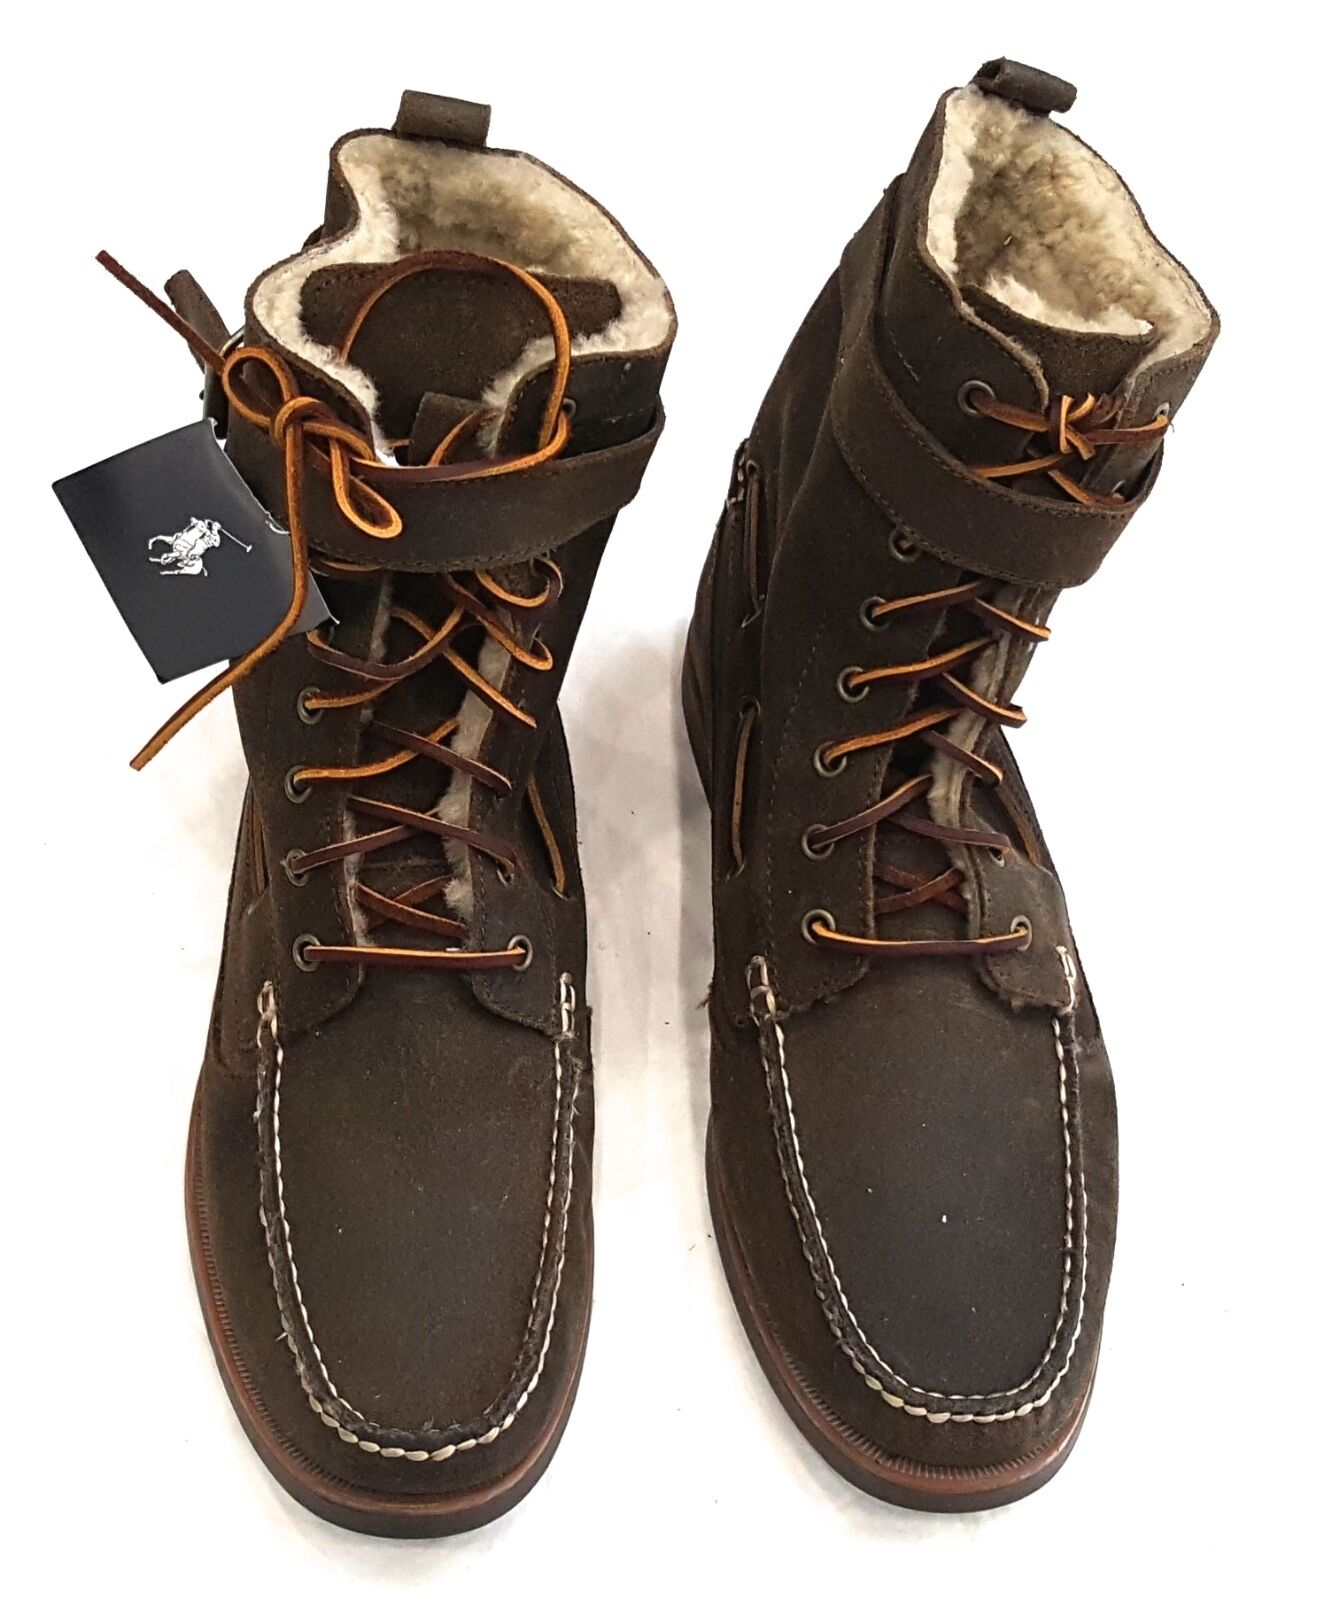 POLO RALPH LAUREN BRENTWOOD  BROWN OILED SUEDE LACE UP BOOT SIZE 11.5D